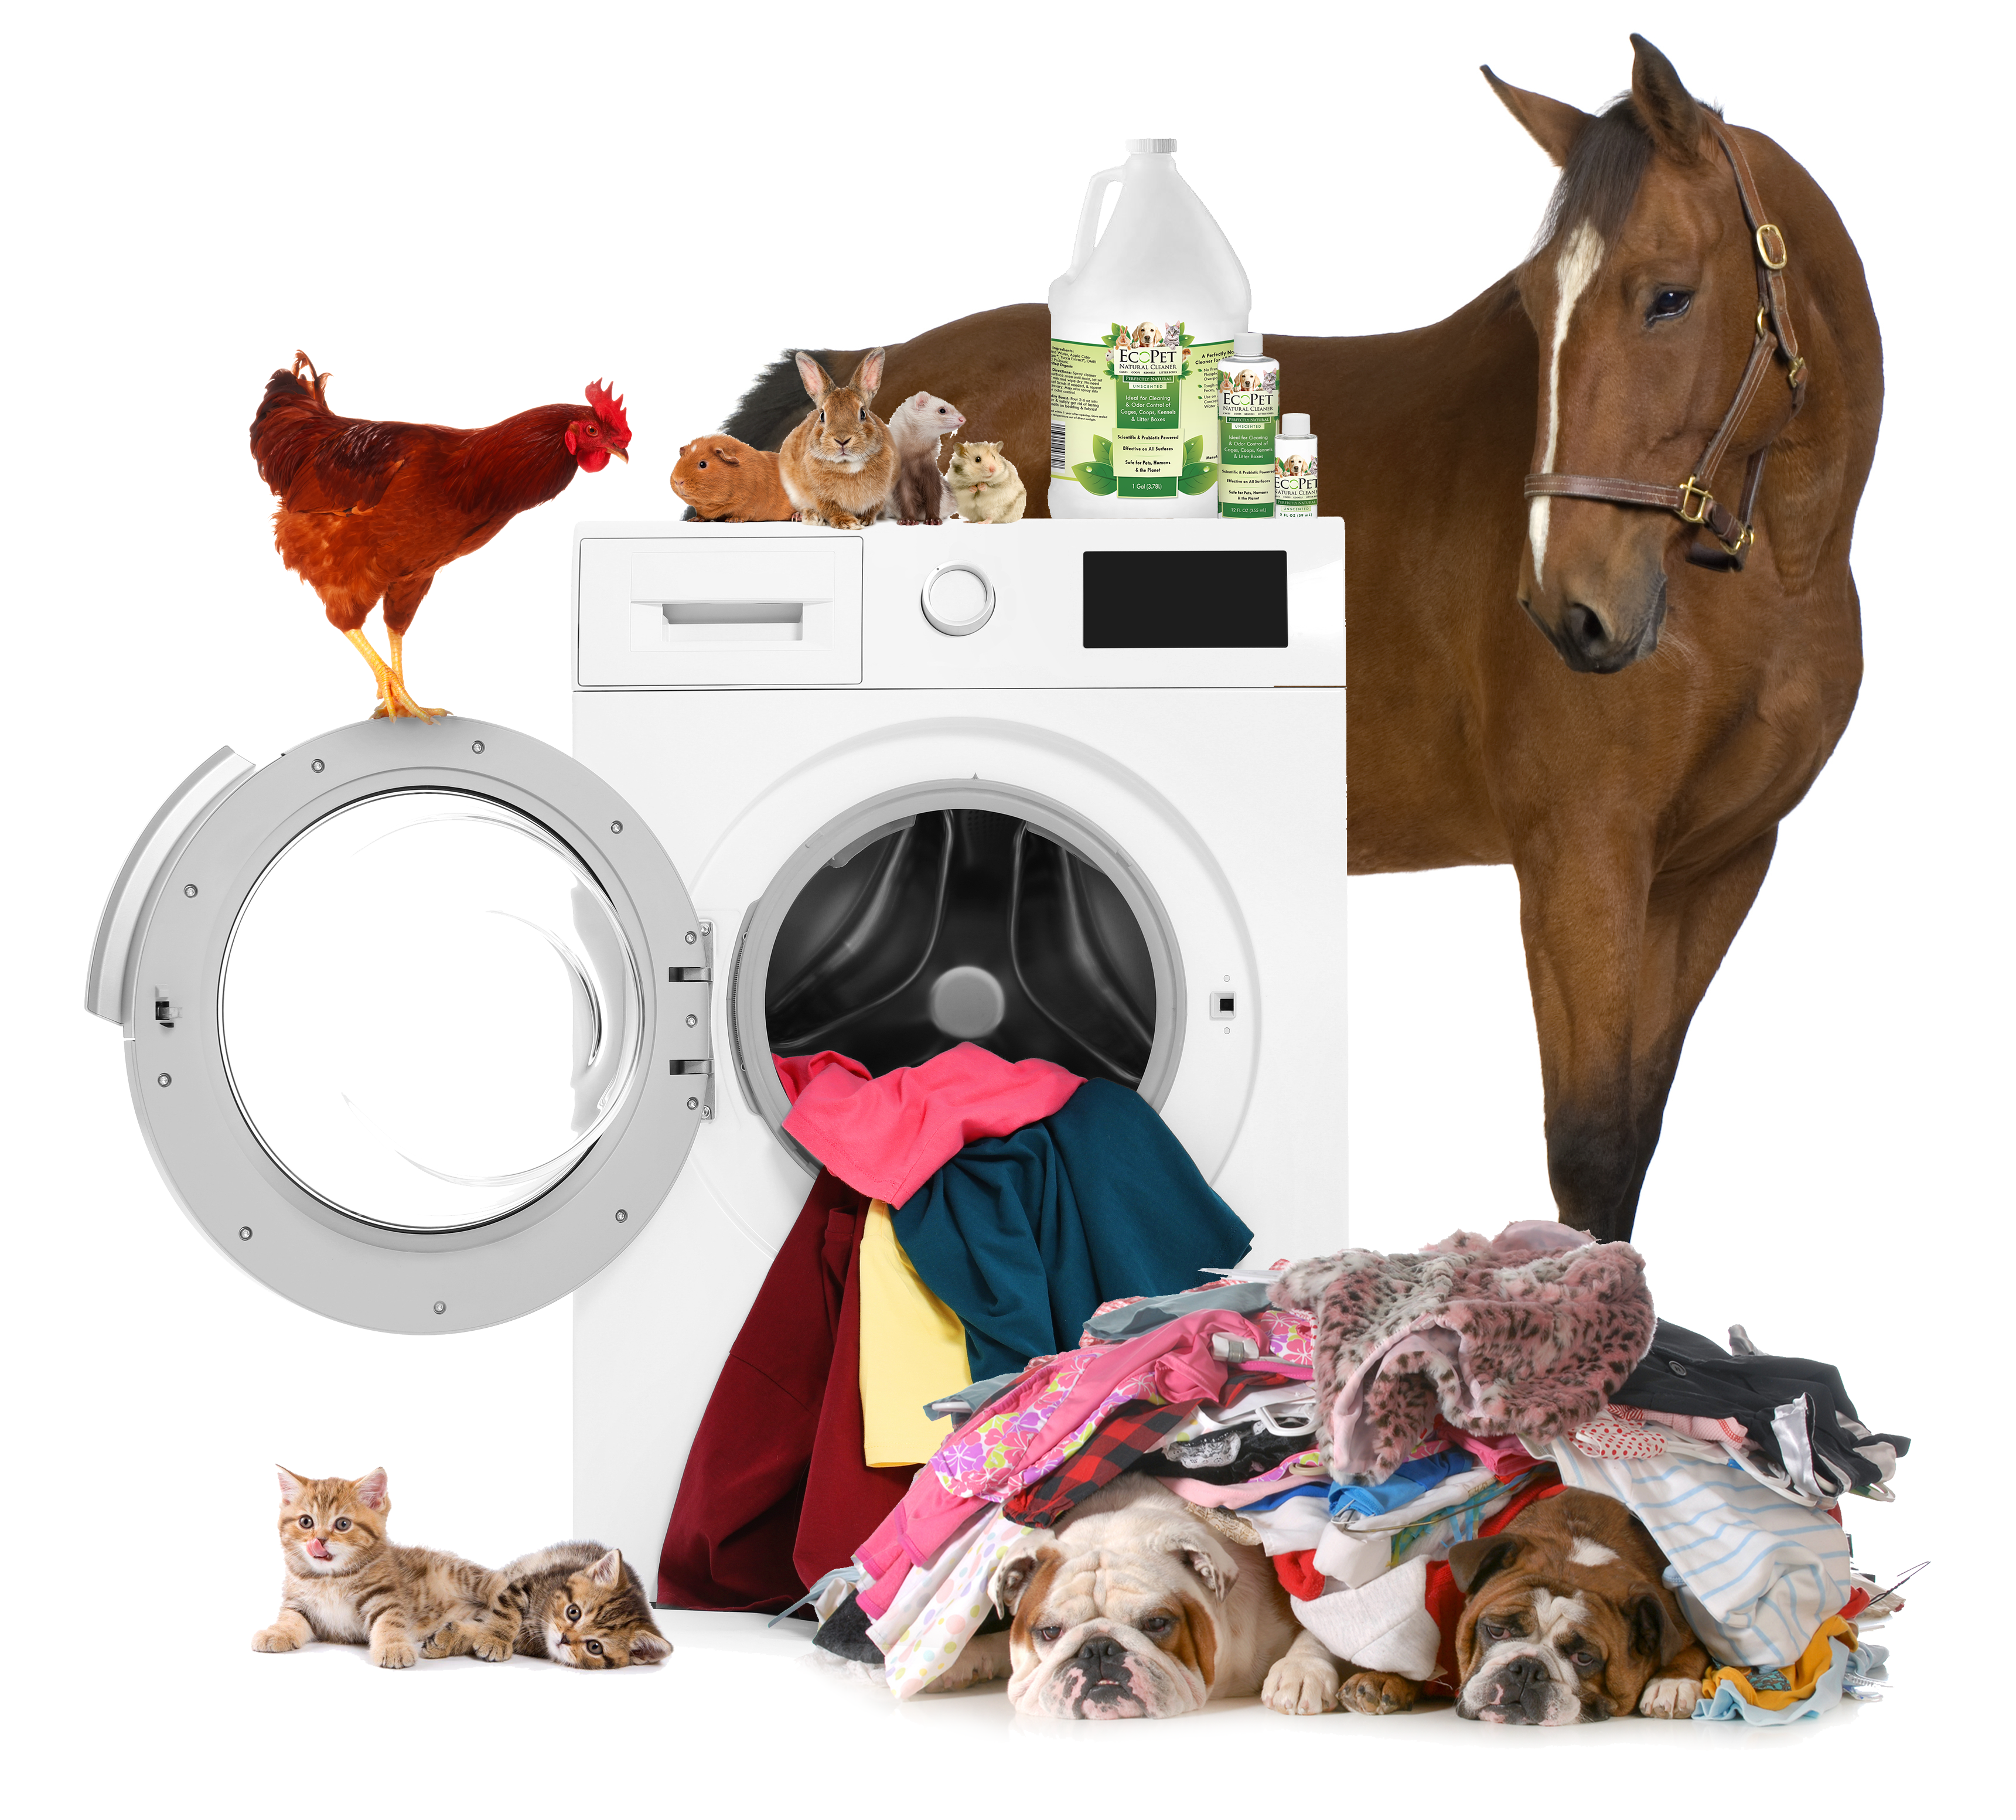 all-animals-on-washer.png